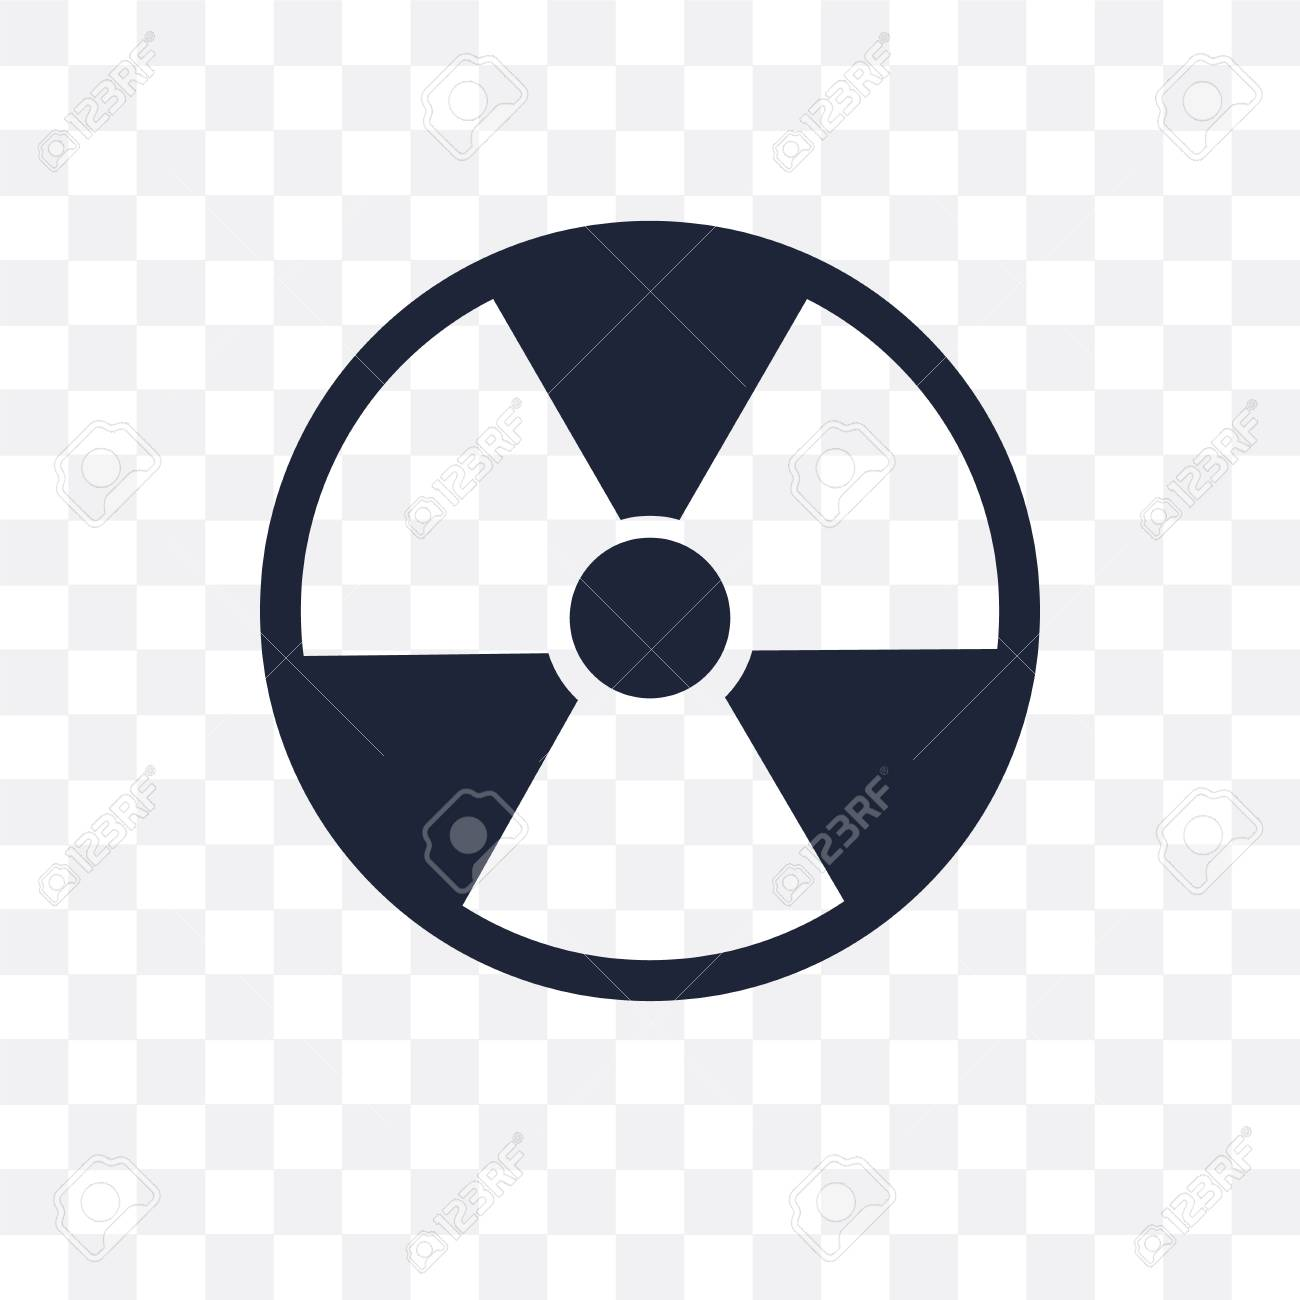 Nuclear transparent icon  Nuclear symbol design from Army collection